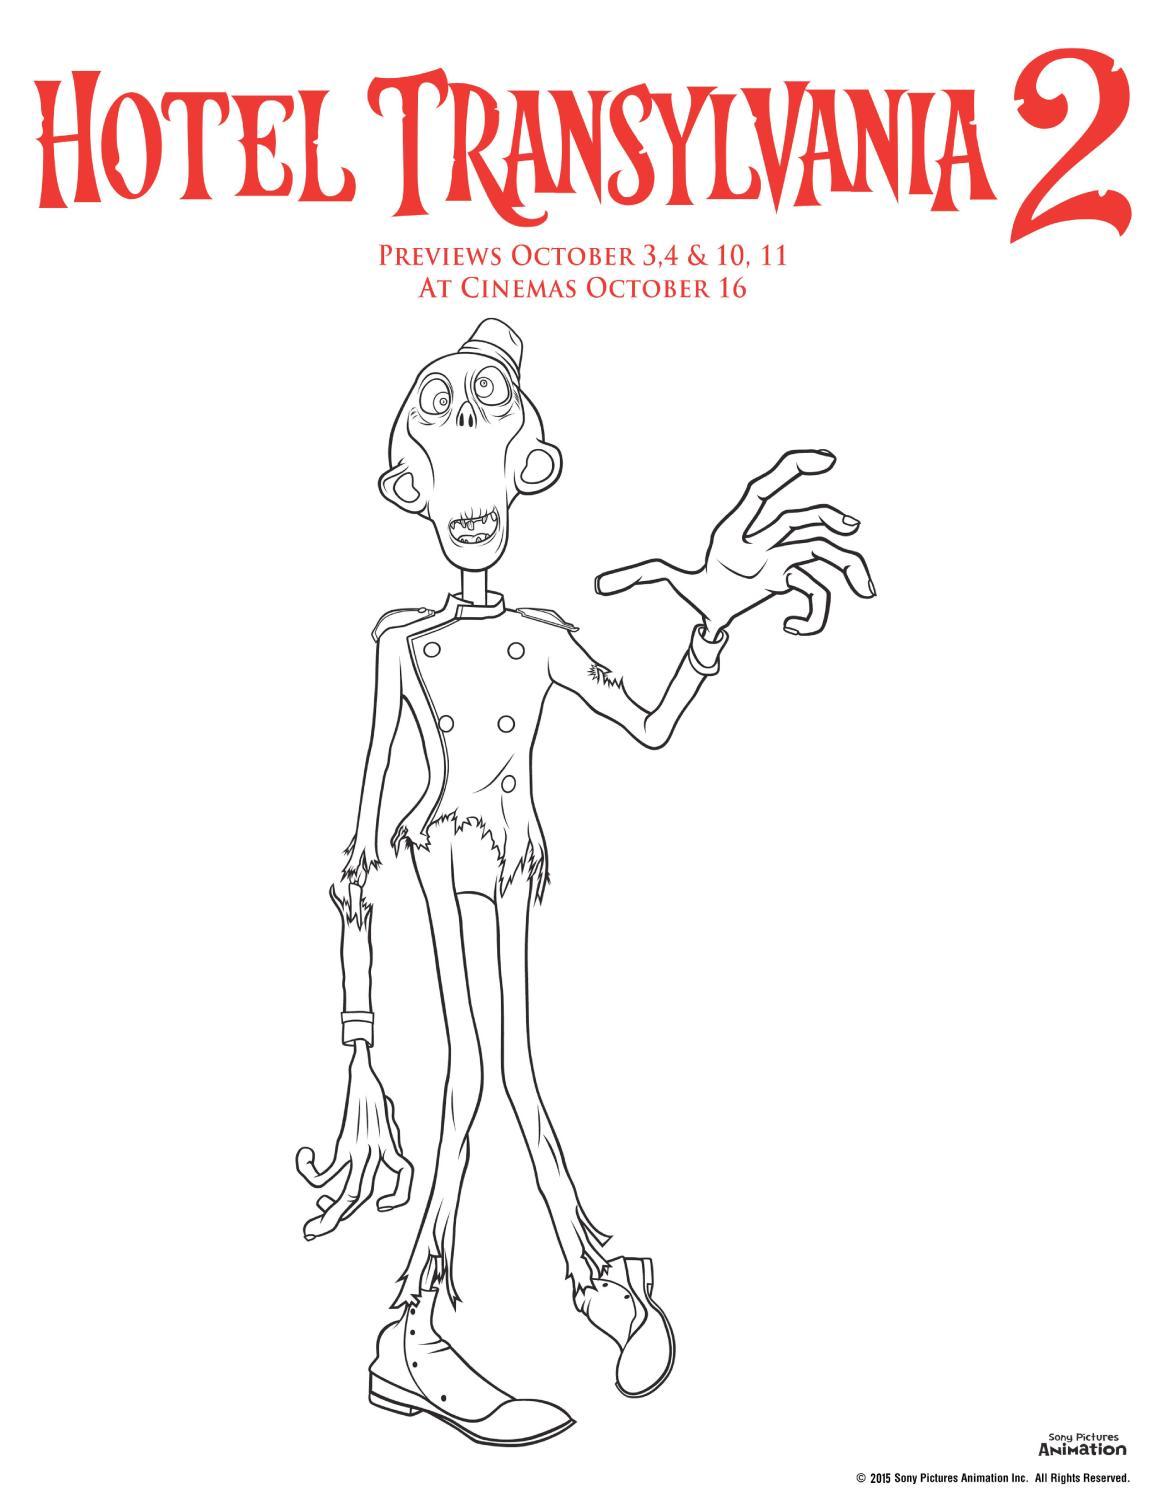 Hotel transylvania 2 colouring pages zombie colouring sheet, perfect for Halloween